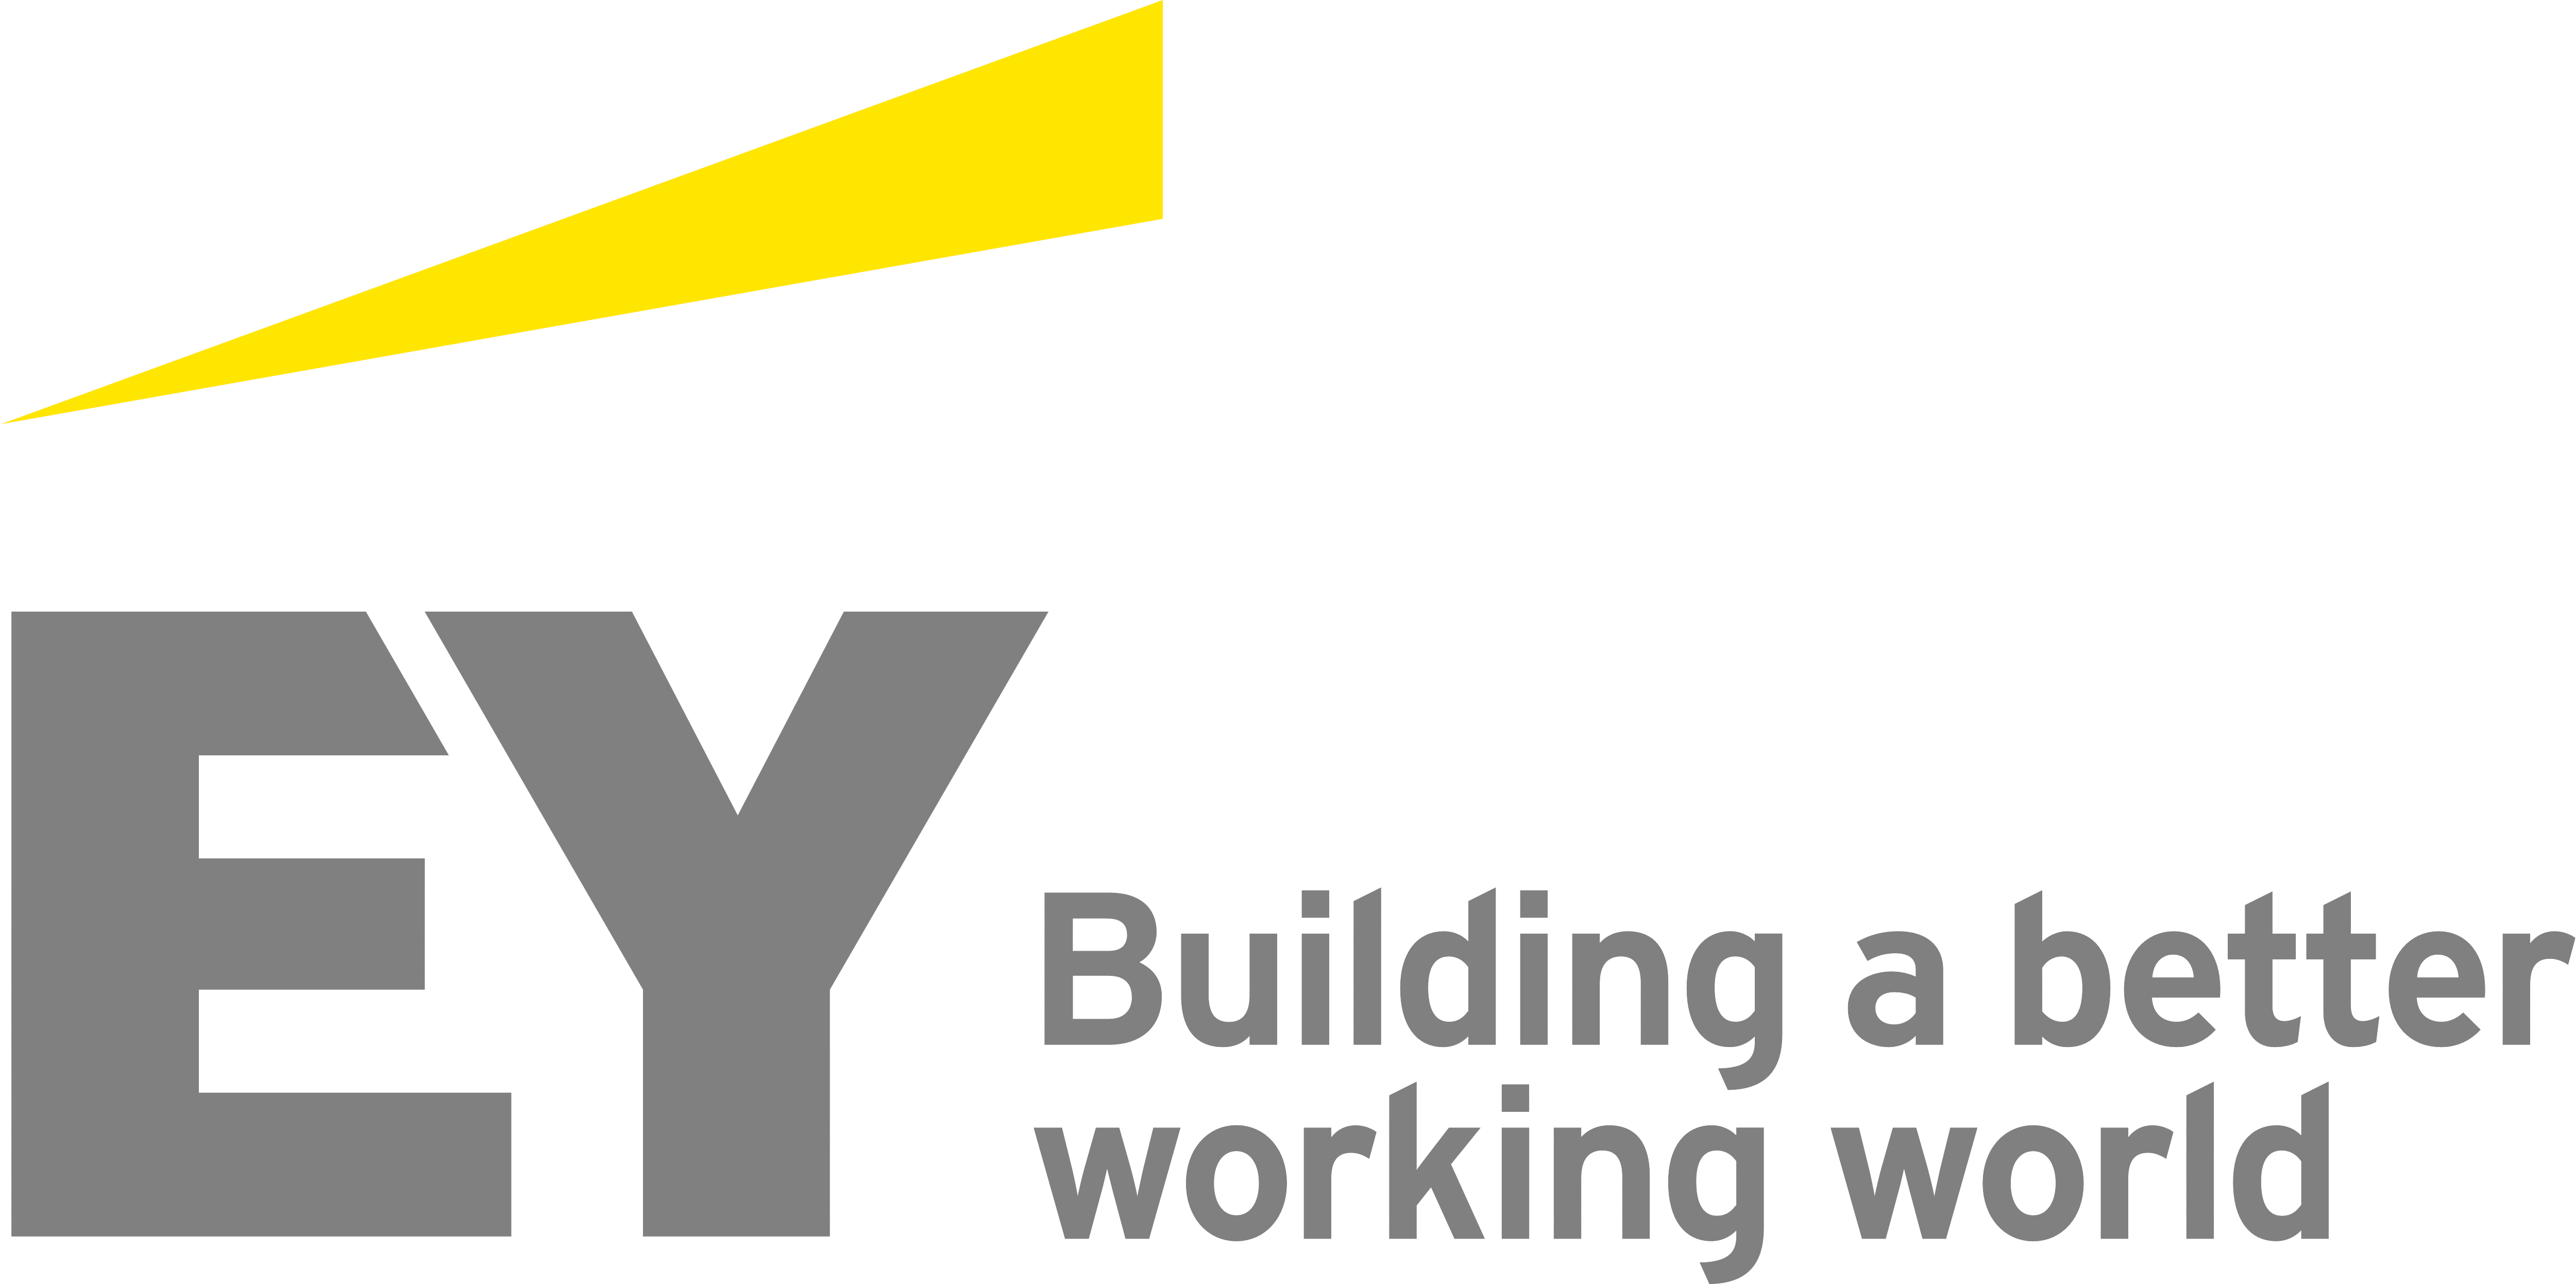 http://kwikkiangie.ac.id/home/wp-content/uploads/2020/07/EY_logo_slogan.png